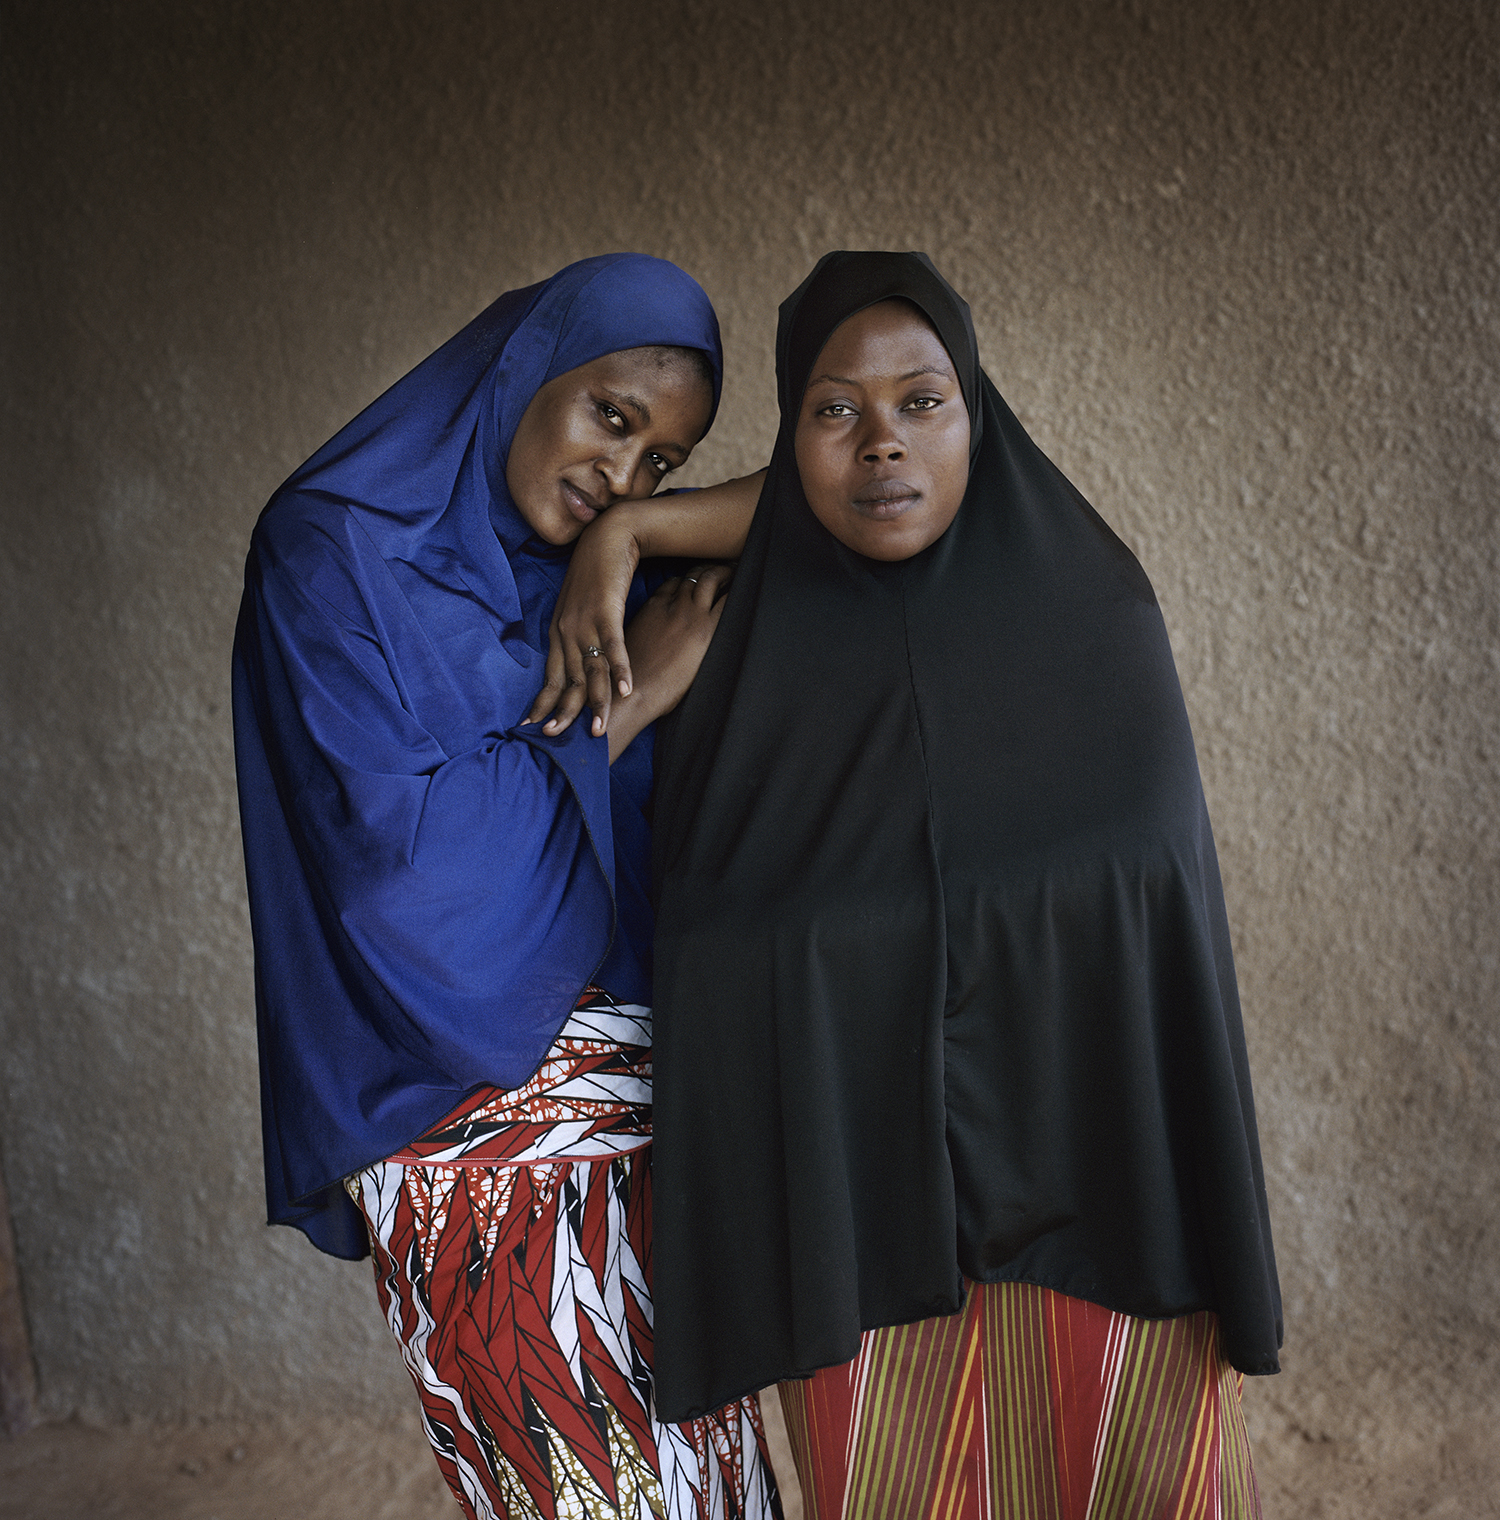 Child_Marriage_Niger_011.jpg